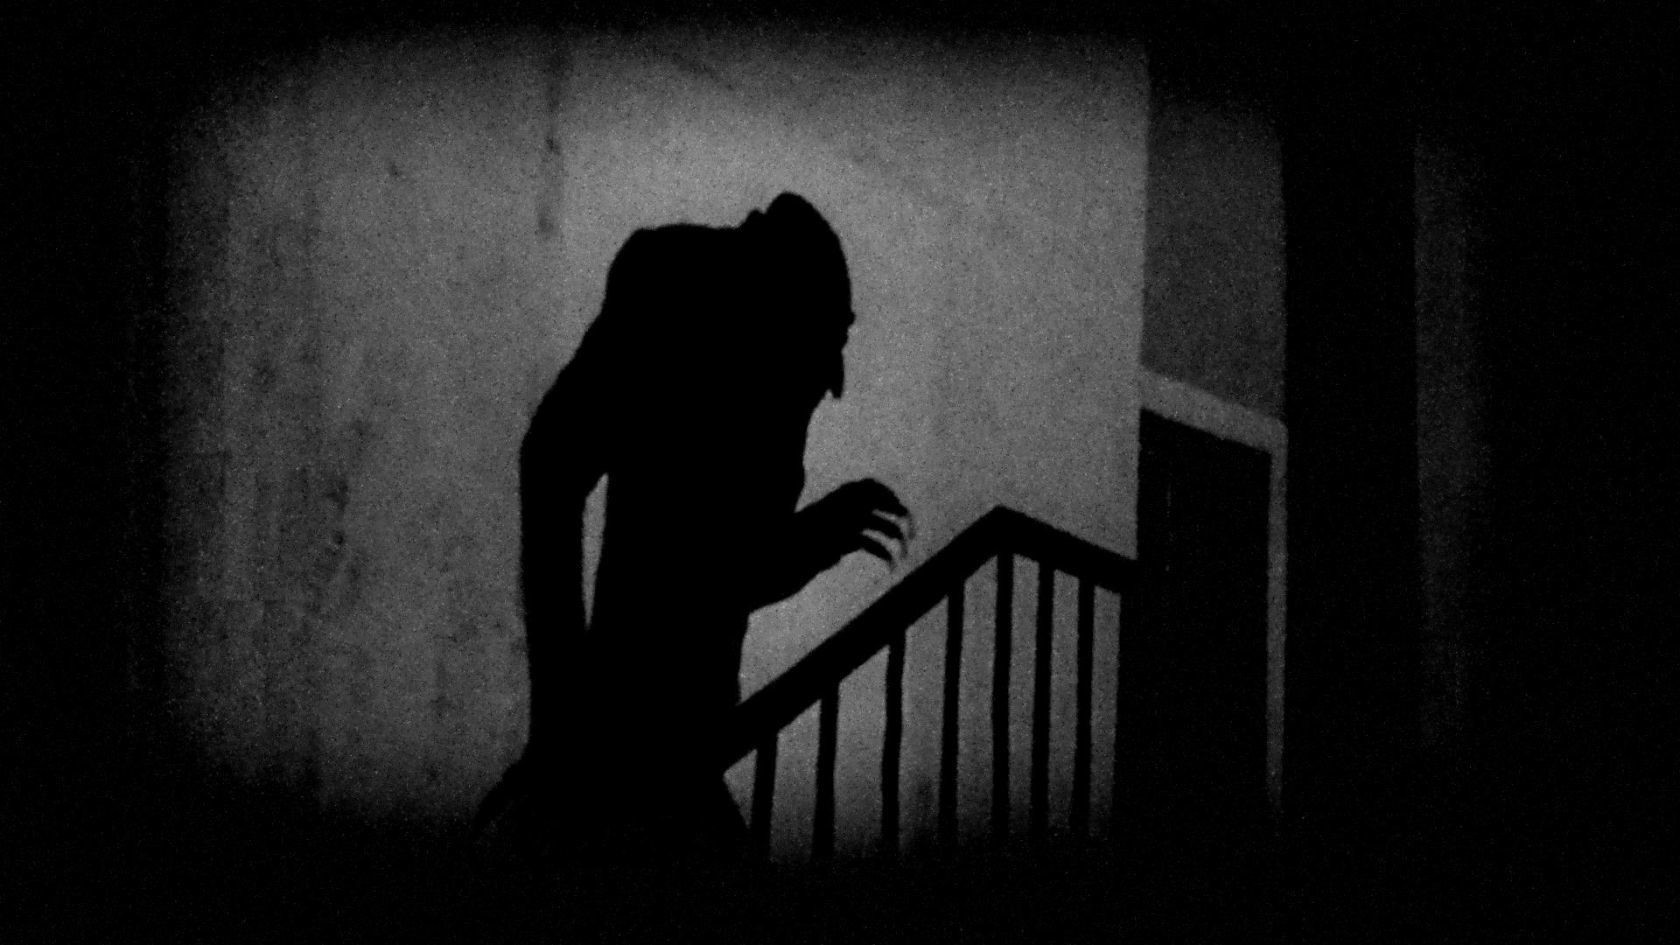 How German Expressionism Has Influenced Horror Movies For the Last 100 Years